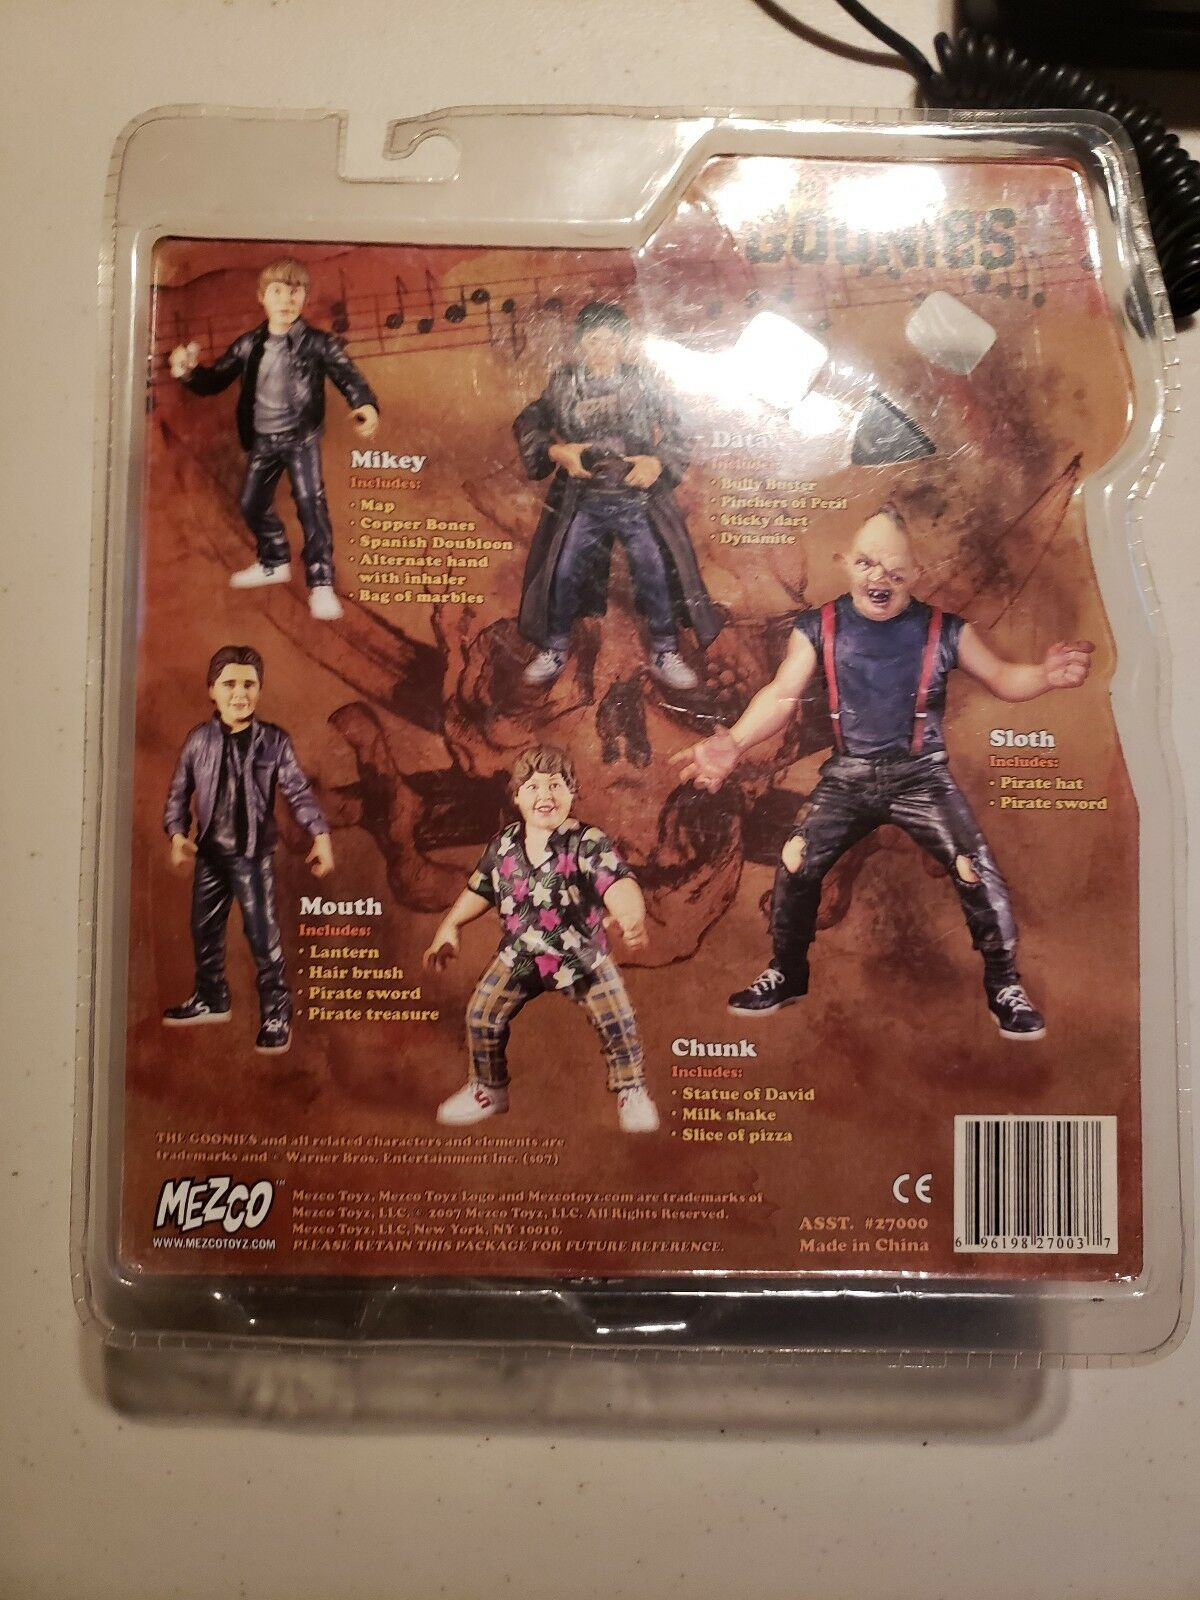 THE THE THE GOONIES MIKEY ACTION FIGURE SEAN ASTIN RICHARD DONNER MOVIE TOY COLLECTIBLE bbfcea